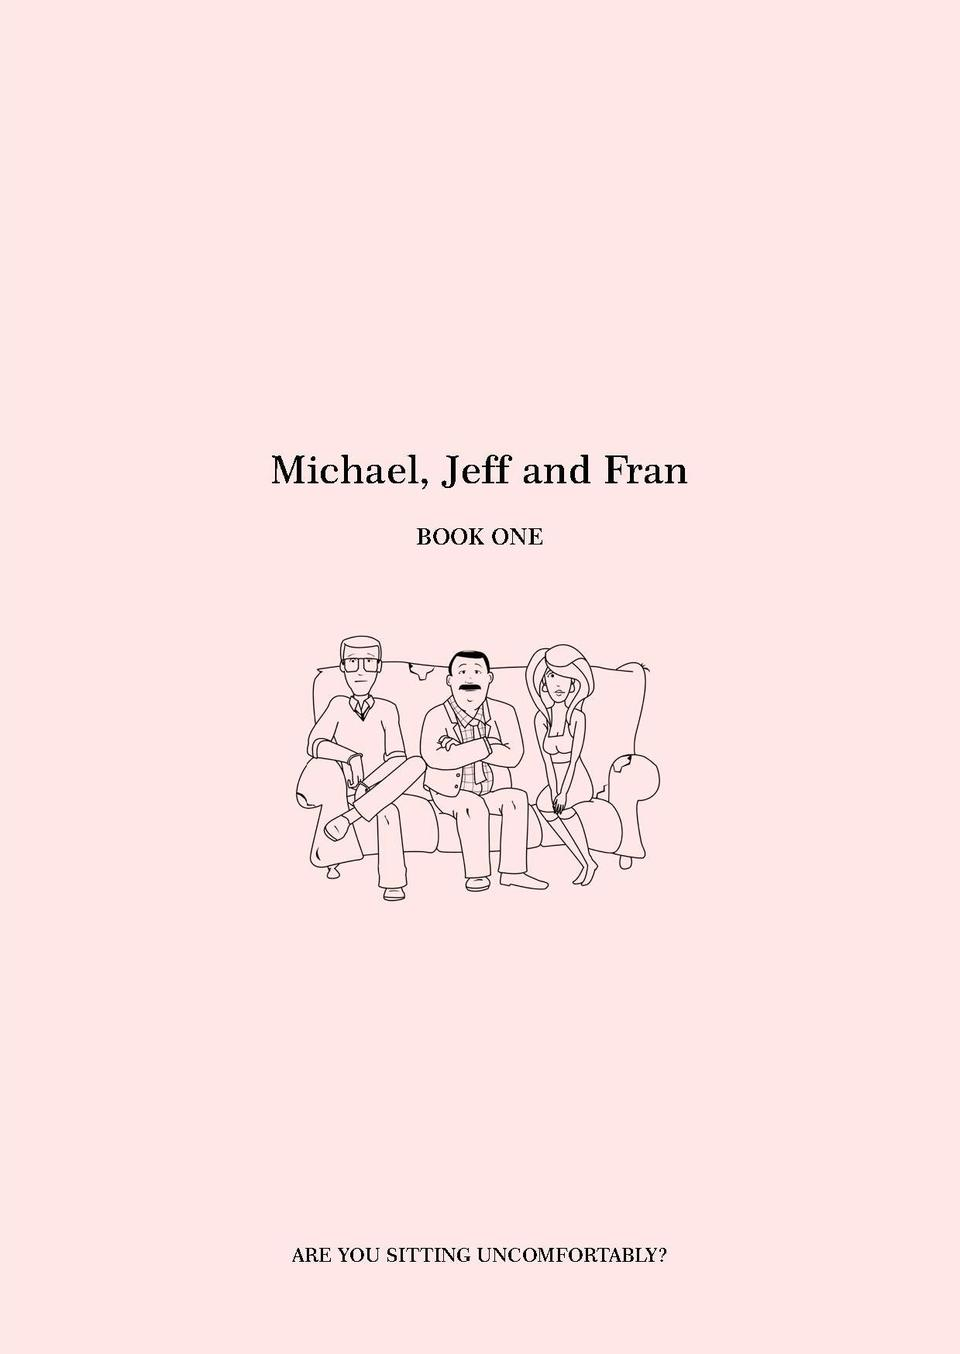 Michael, Jeff and Fran BOOK ONE  ARE YOU SITTING UNCOMFORTABLY